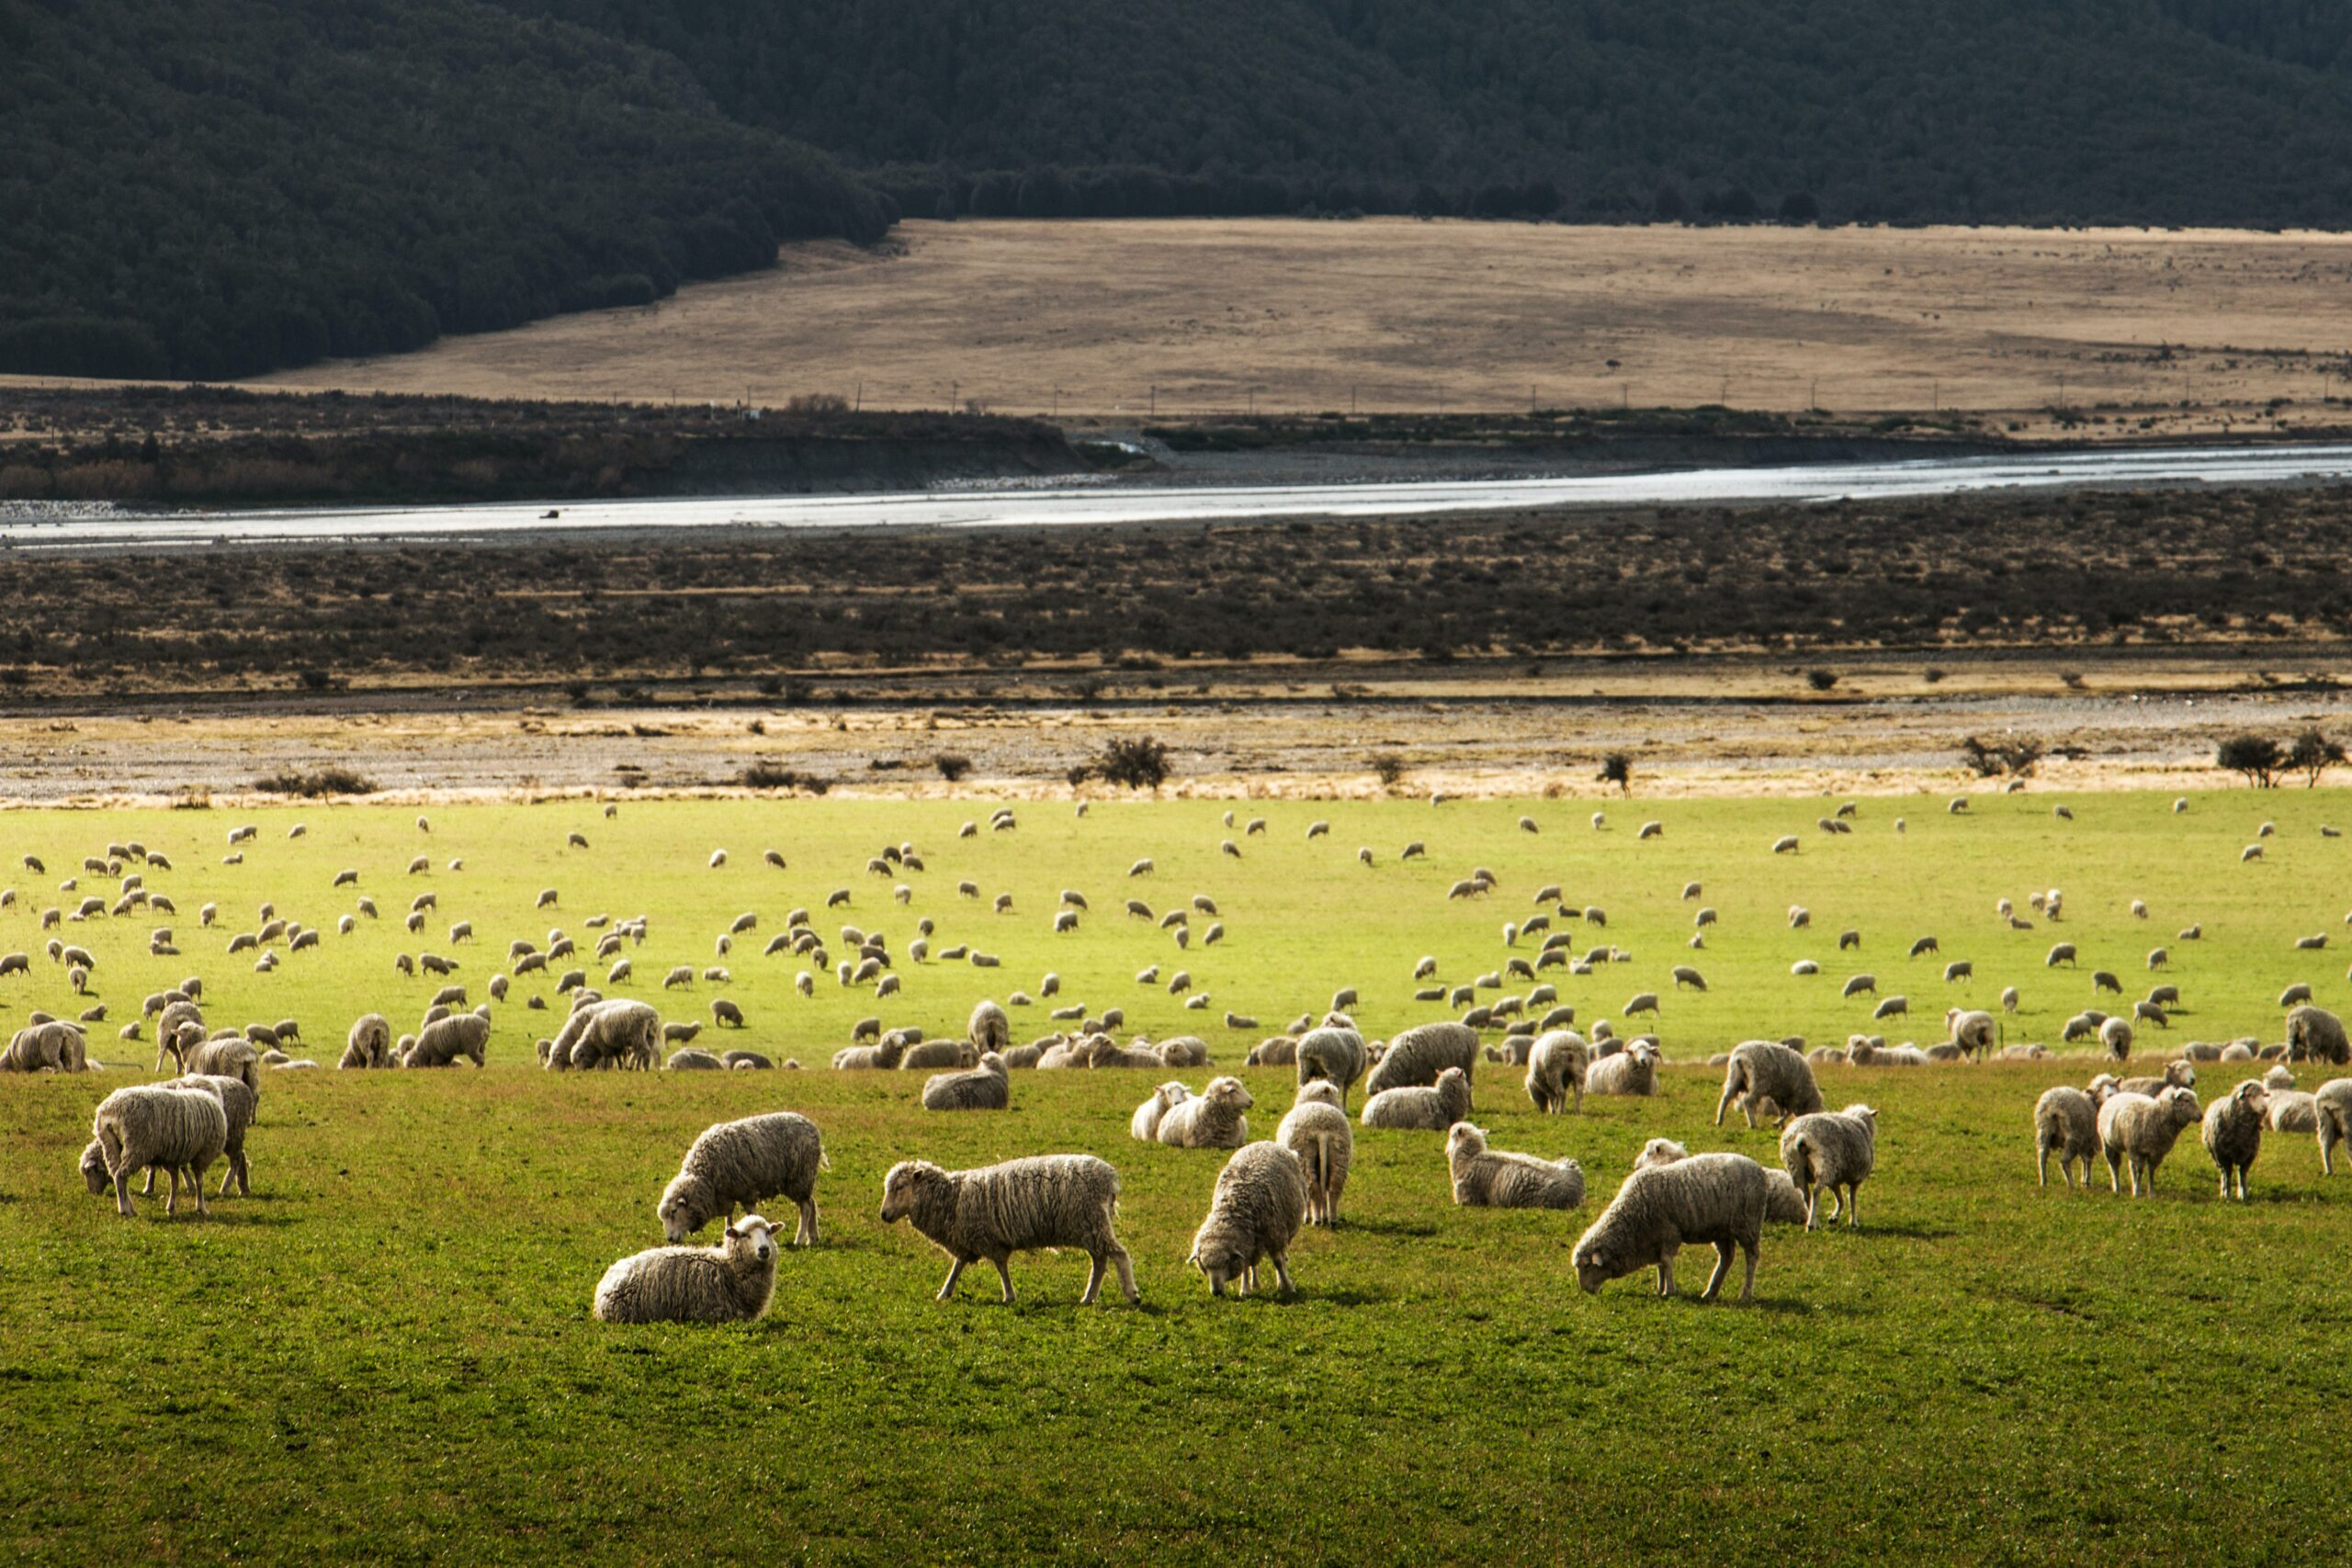 Clostridial diseases can seriously damage sheep flocks.